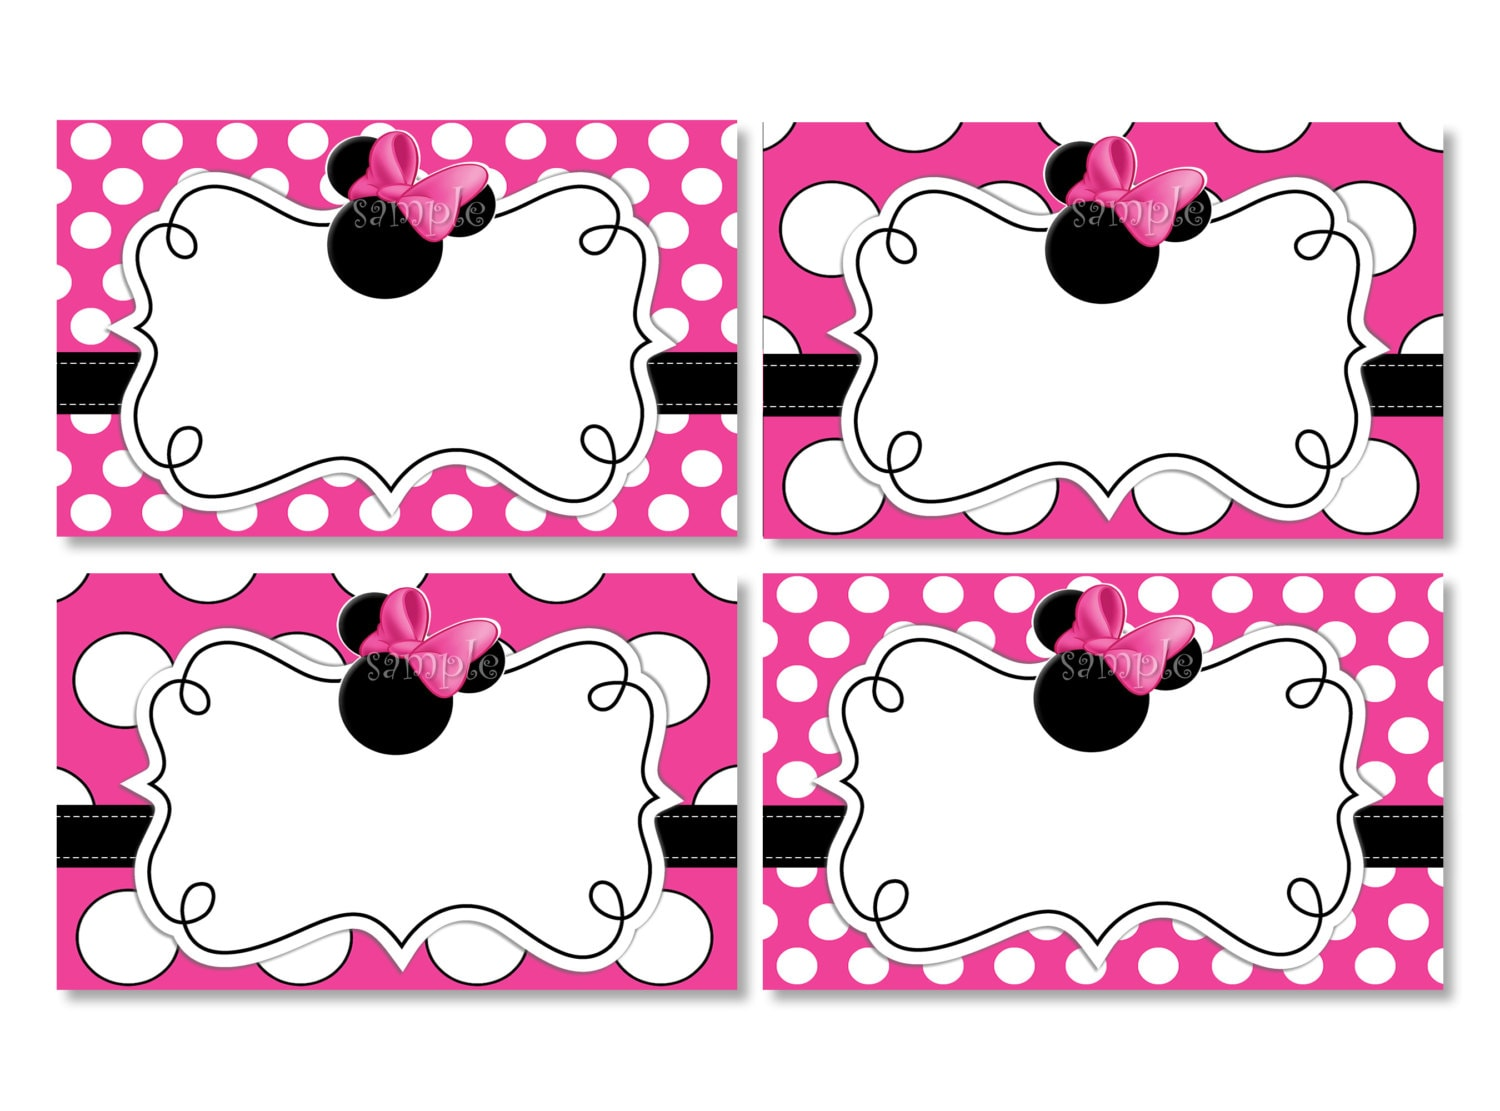 Minnie Mouse Head Invitation Template as good invitation design